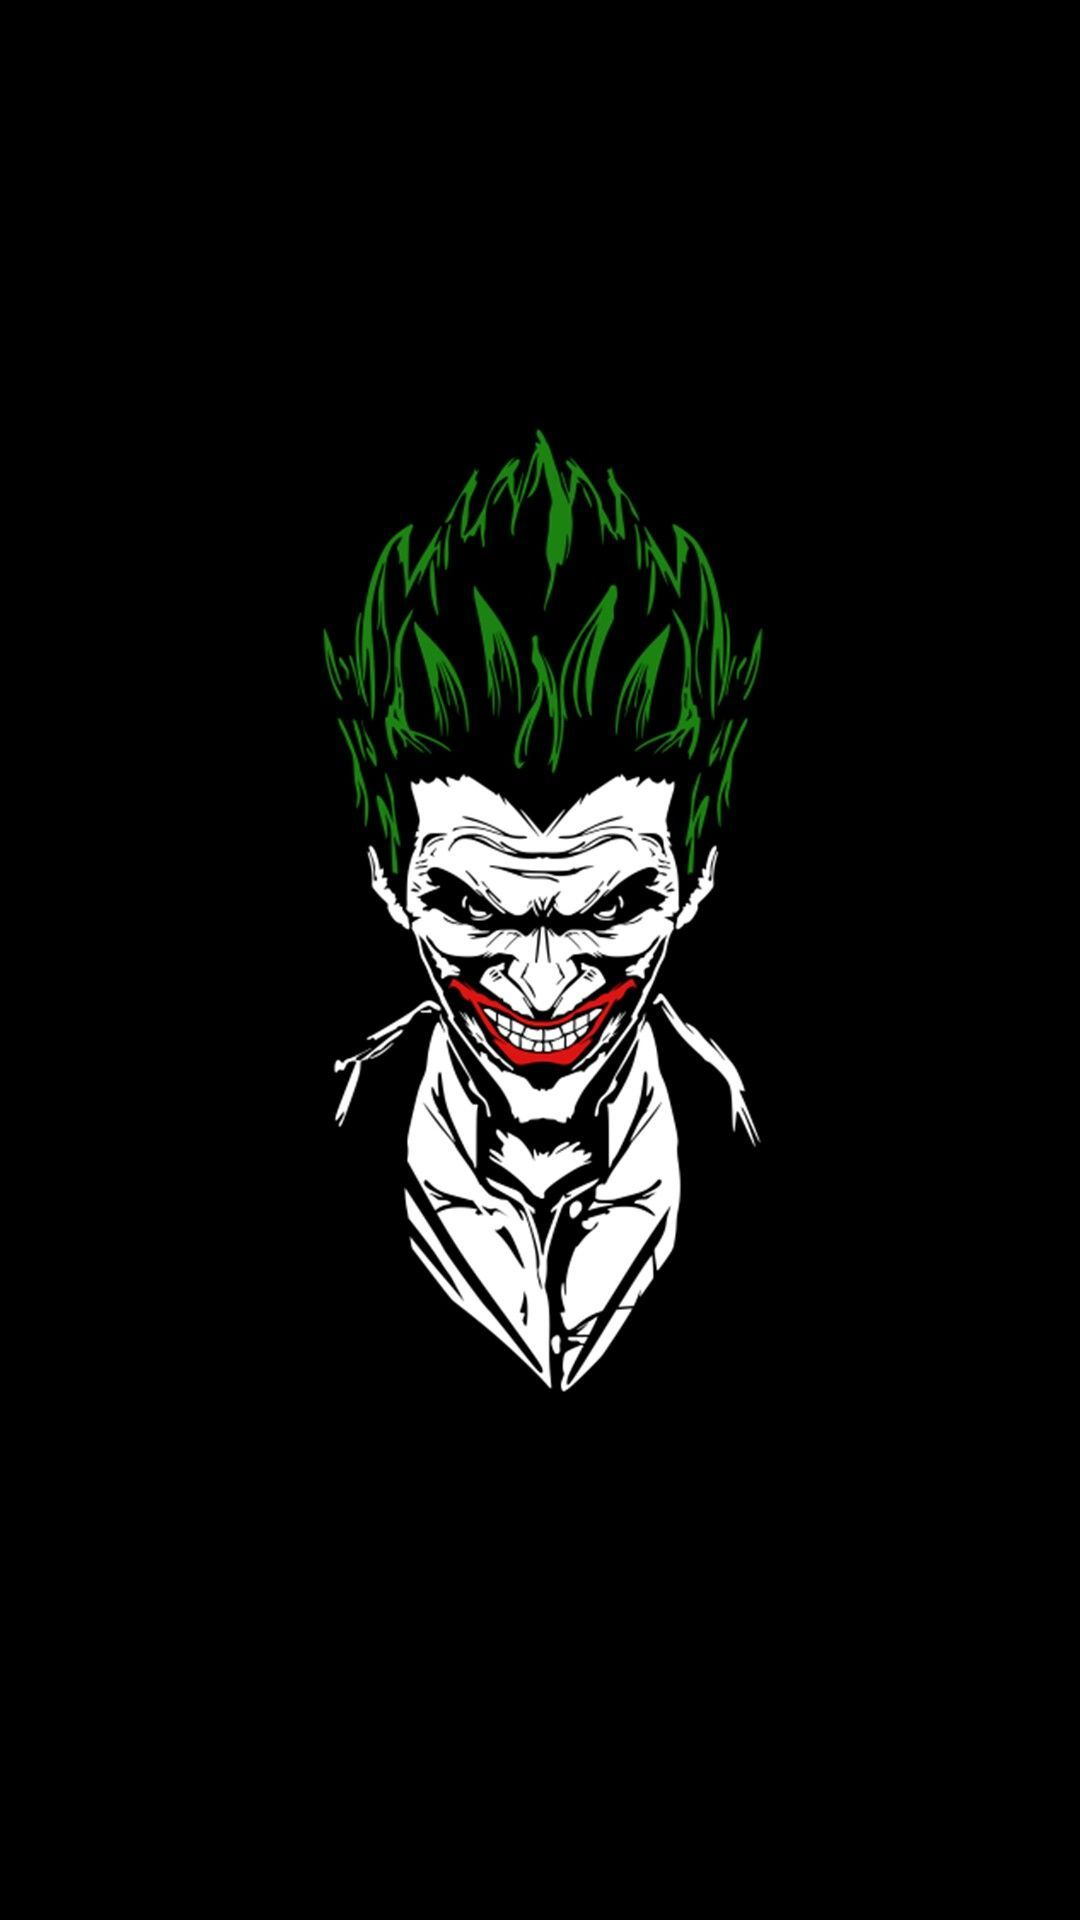 Drawing Dc Comics Joker Joker cartoon, Joker smile